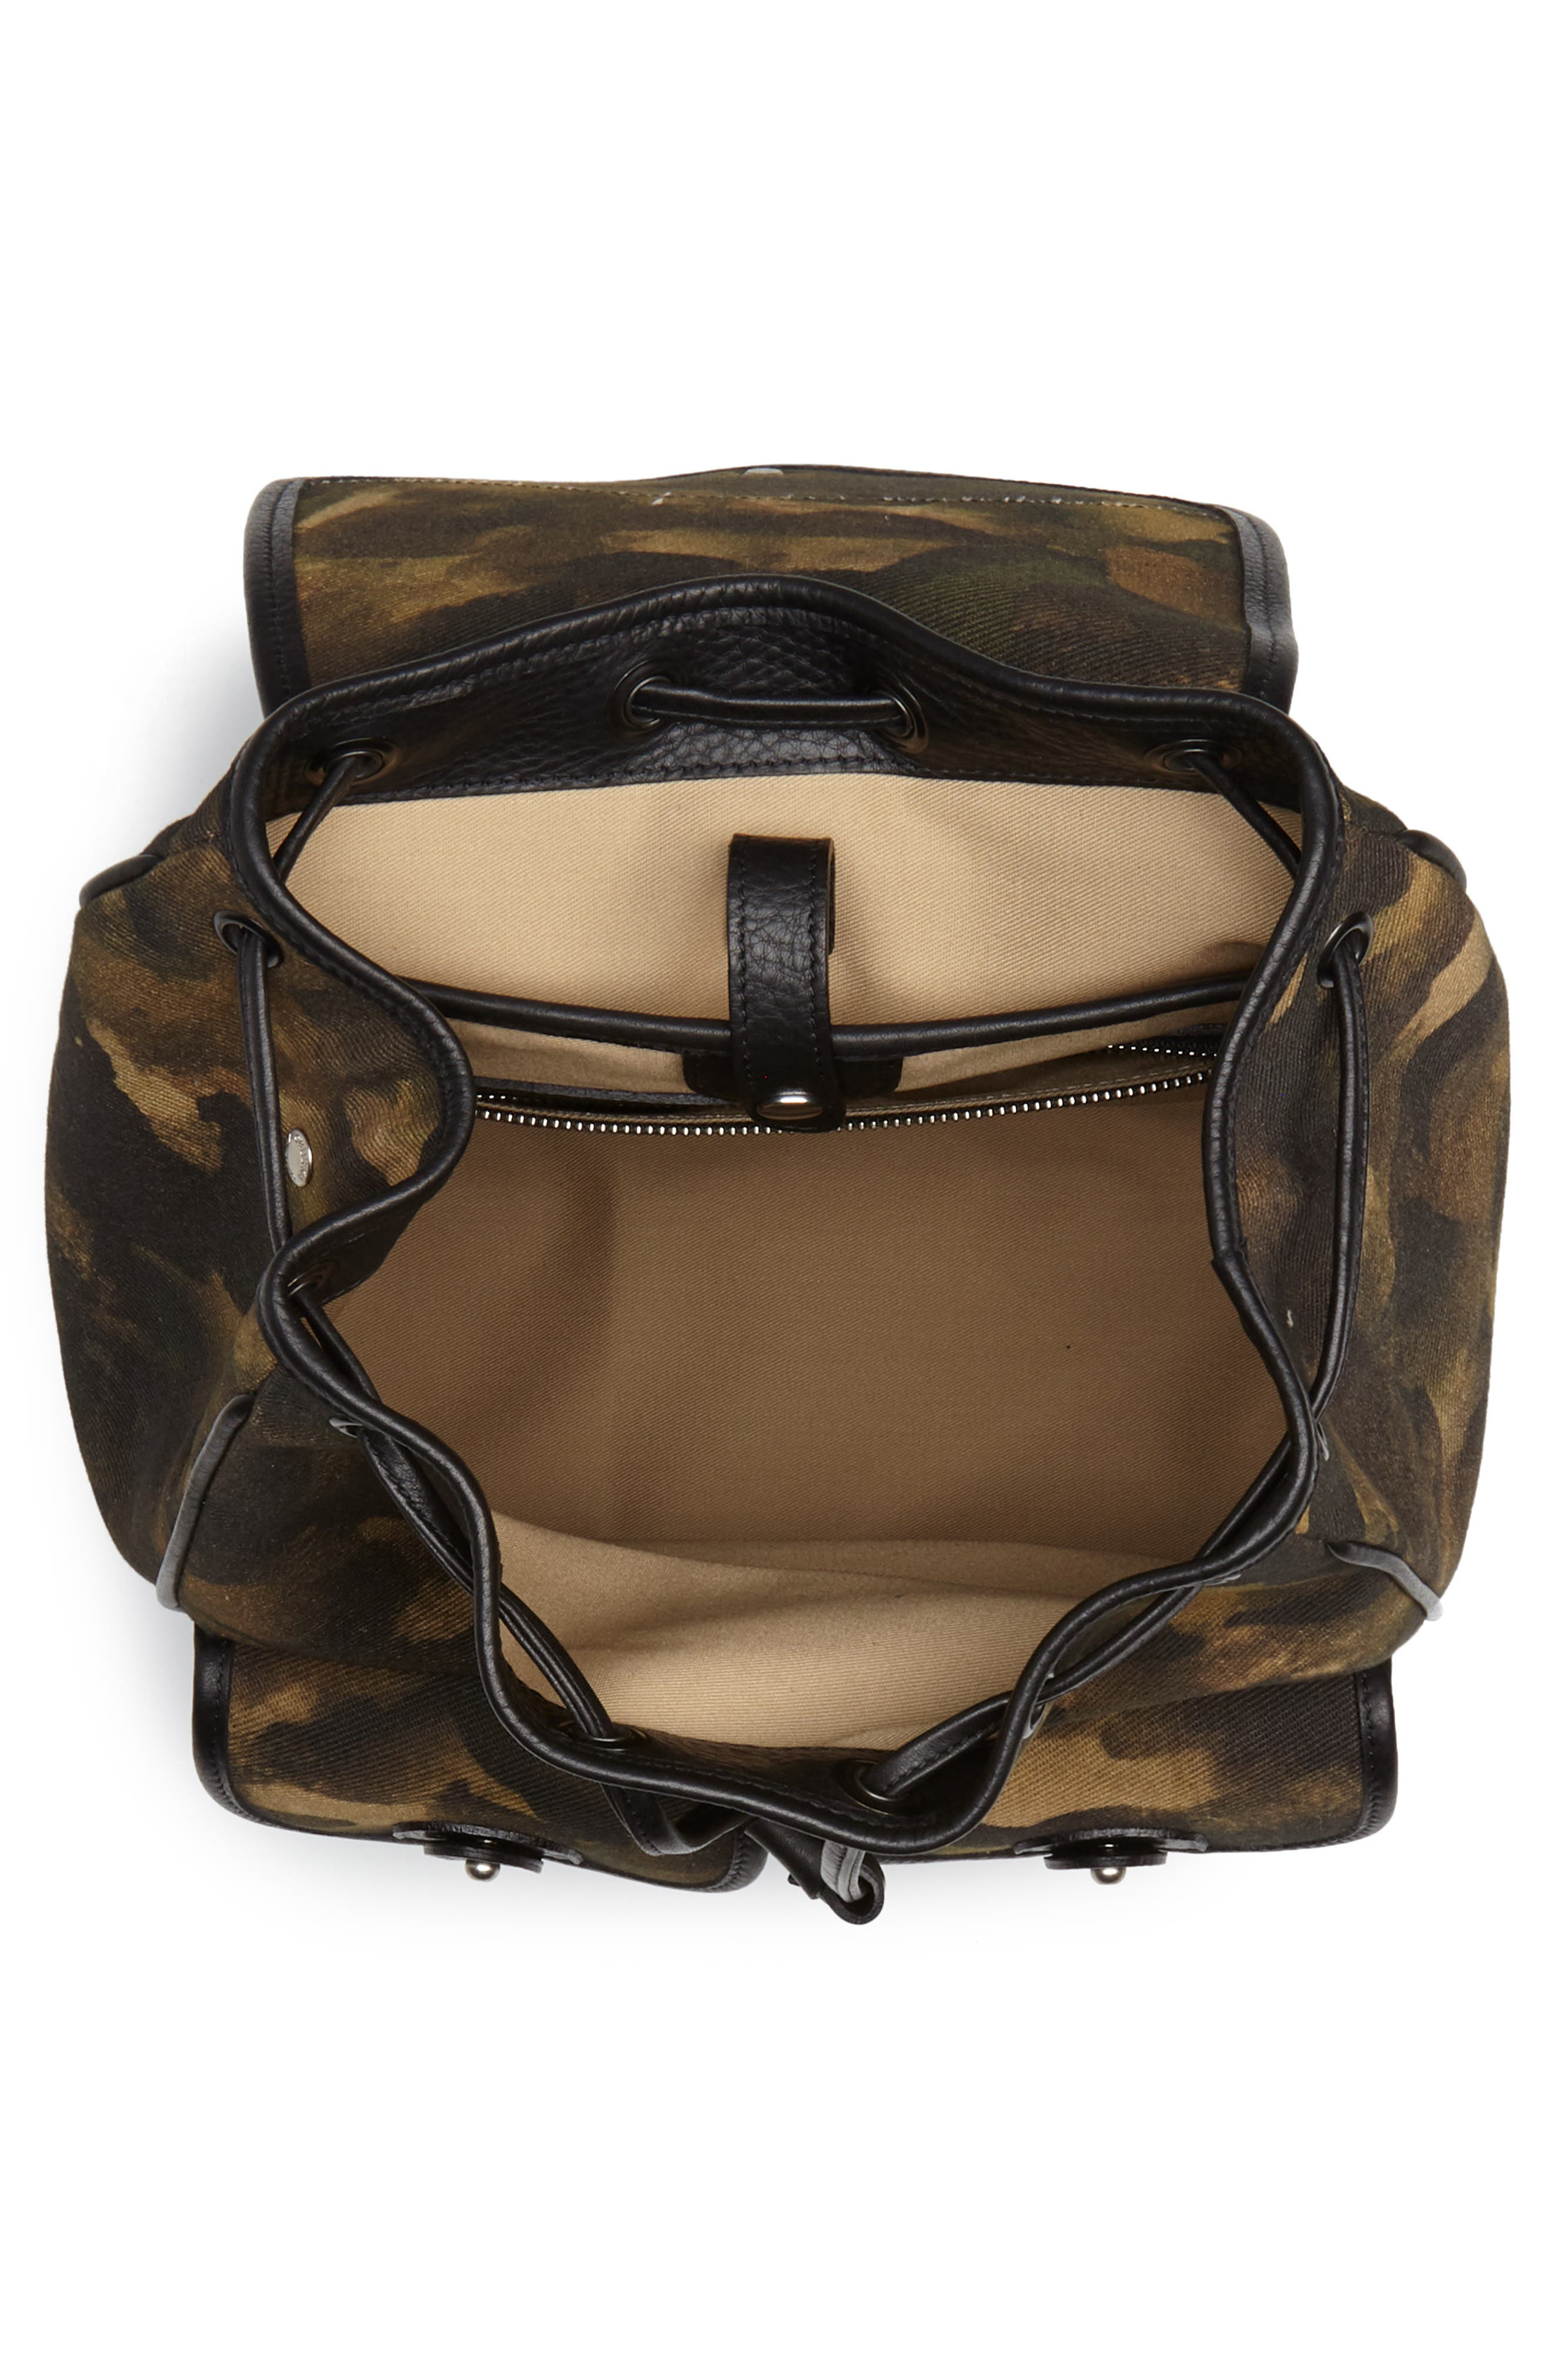 Blazer Canvas Backpack,                             Alternate thumbnail 4, color,                             Camo Solid